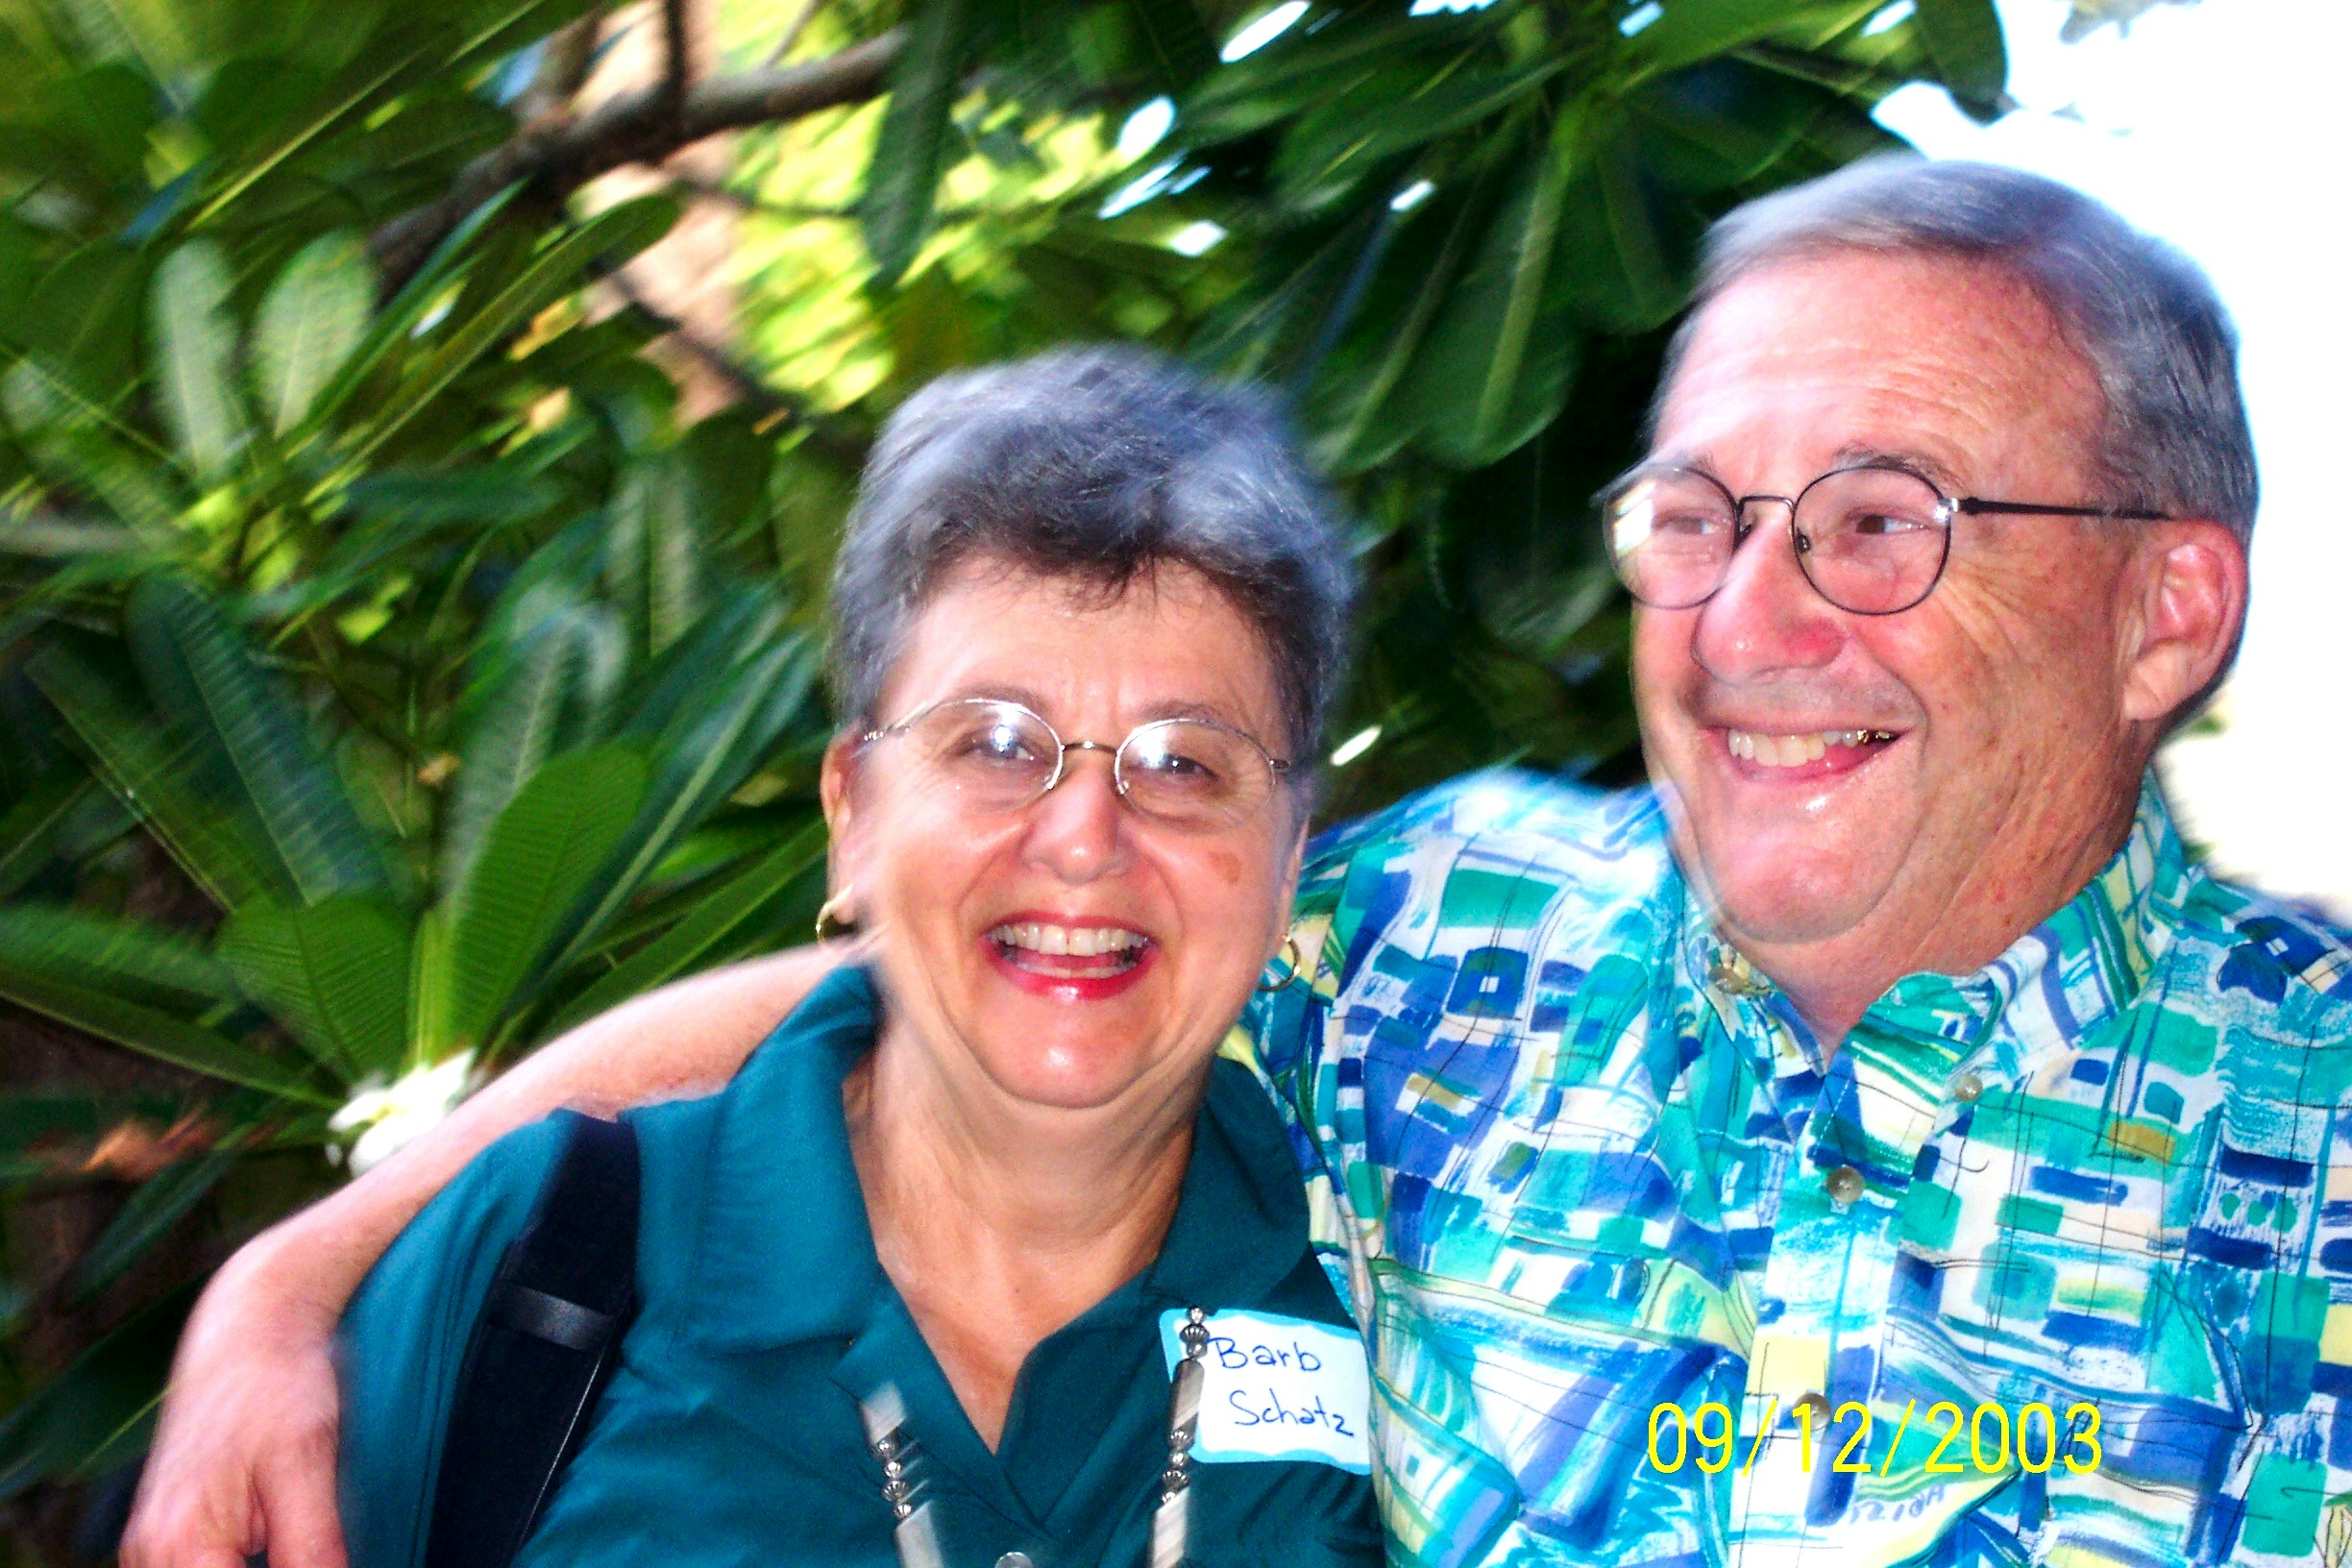 Barb and Irv Schatz, in 2003. Provided by UH Department of Medicine.